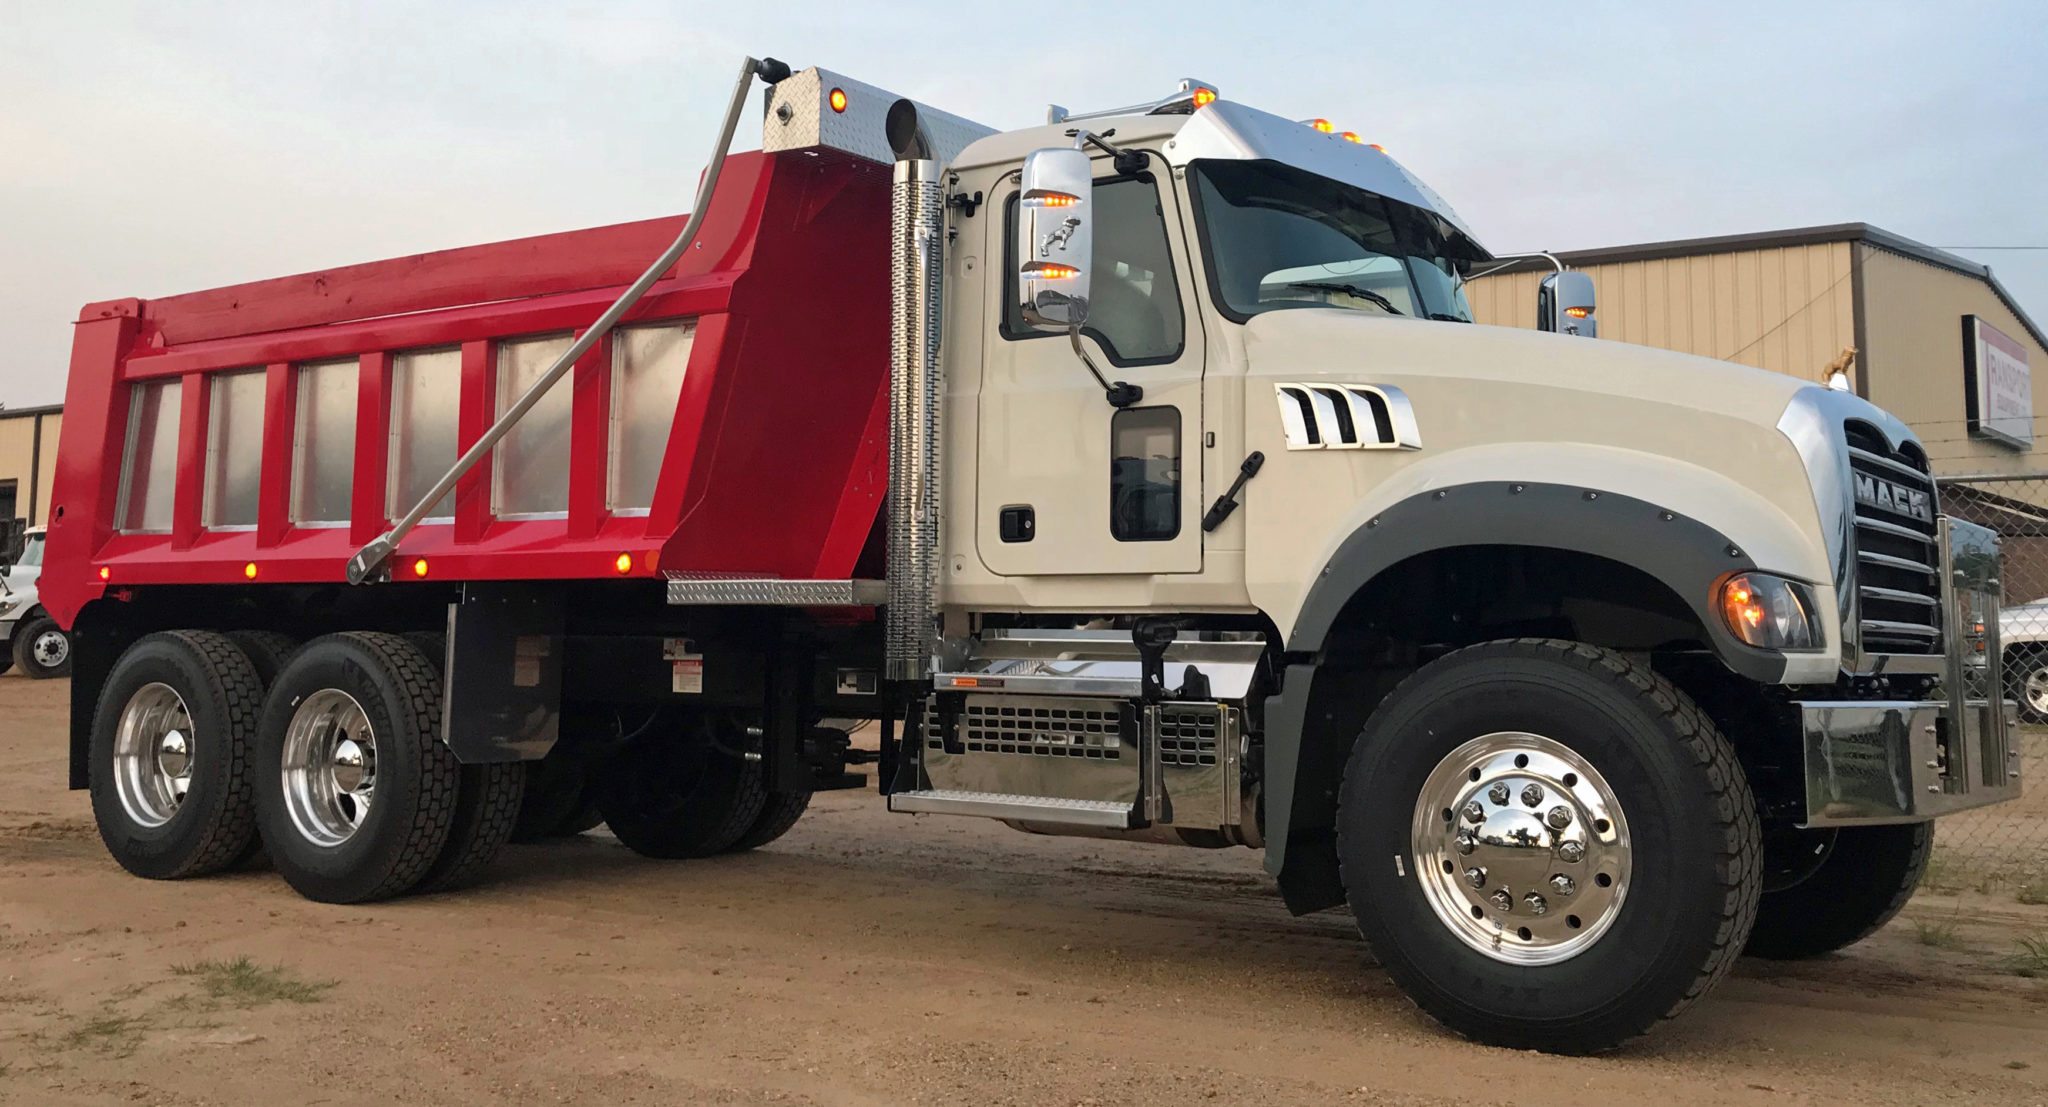 Spotlight On Transport Equipment Of Albany Georgia Providing The Southeast With Quality Truck Bodies And More Including Hooklifts Ampliroll Hooklift Systems